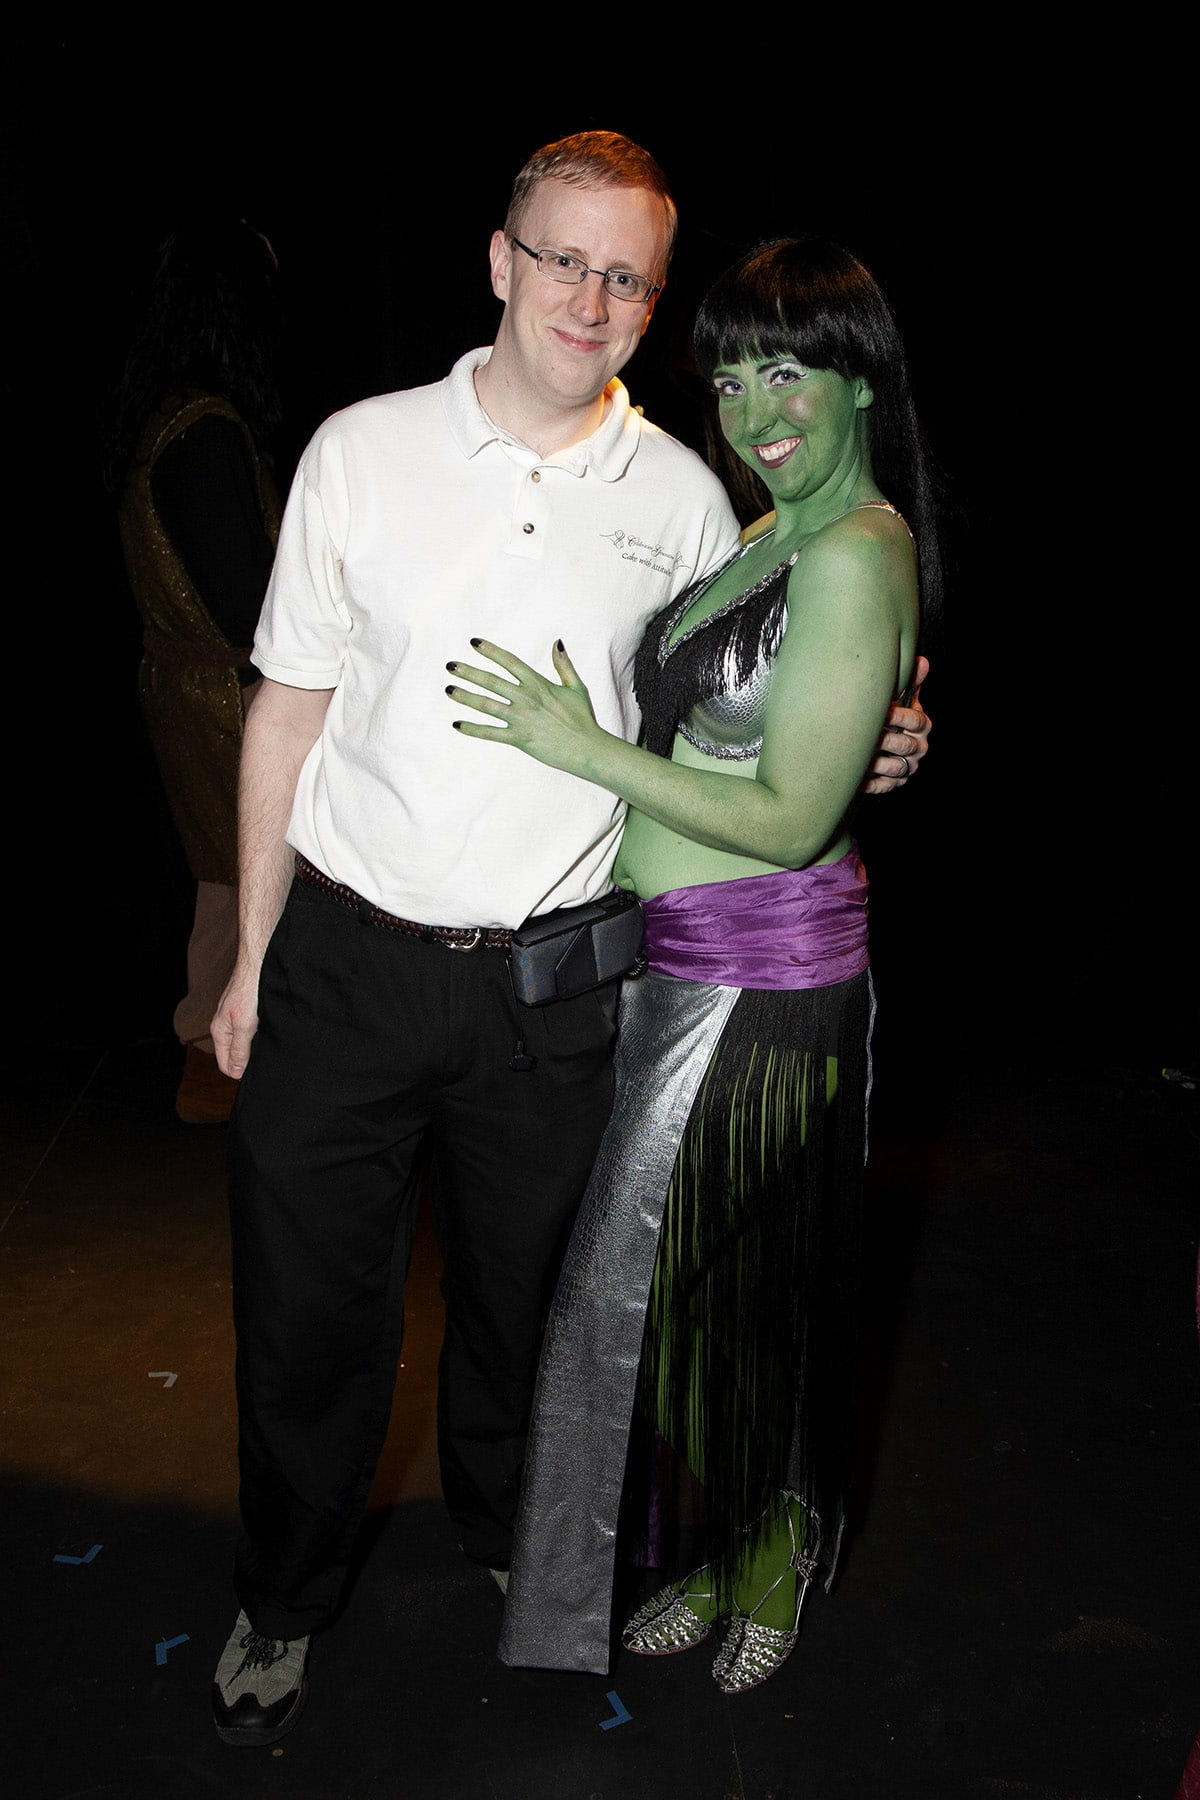 The author's husband poses with a green-skinned Orion Dancer.